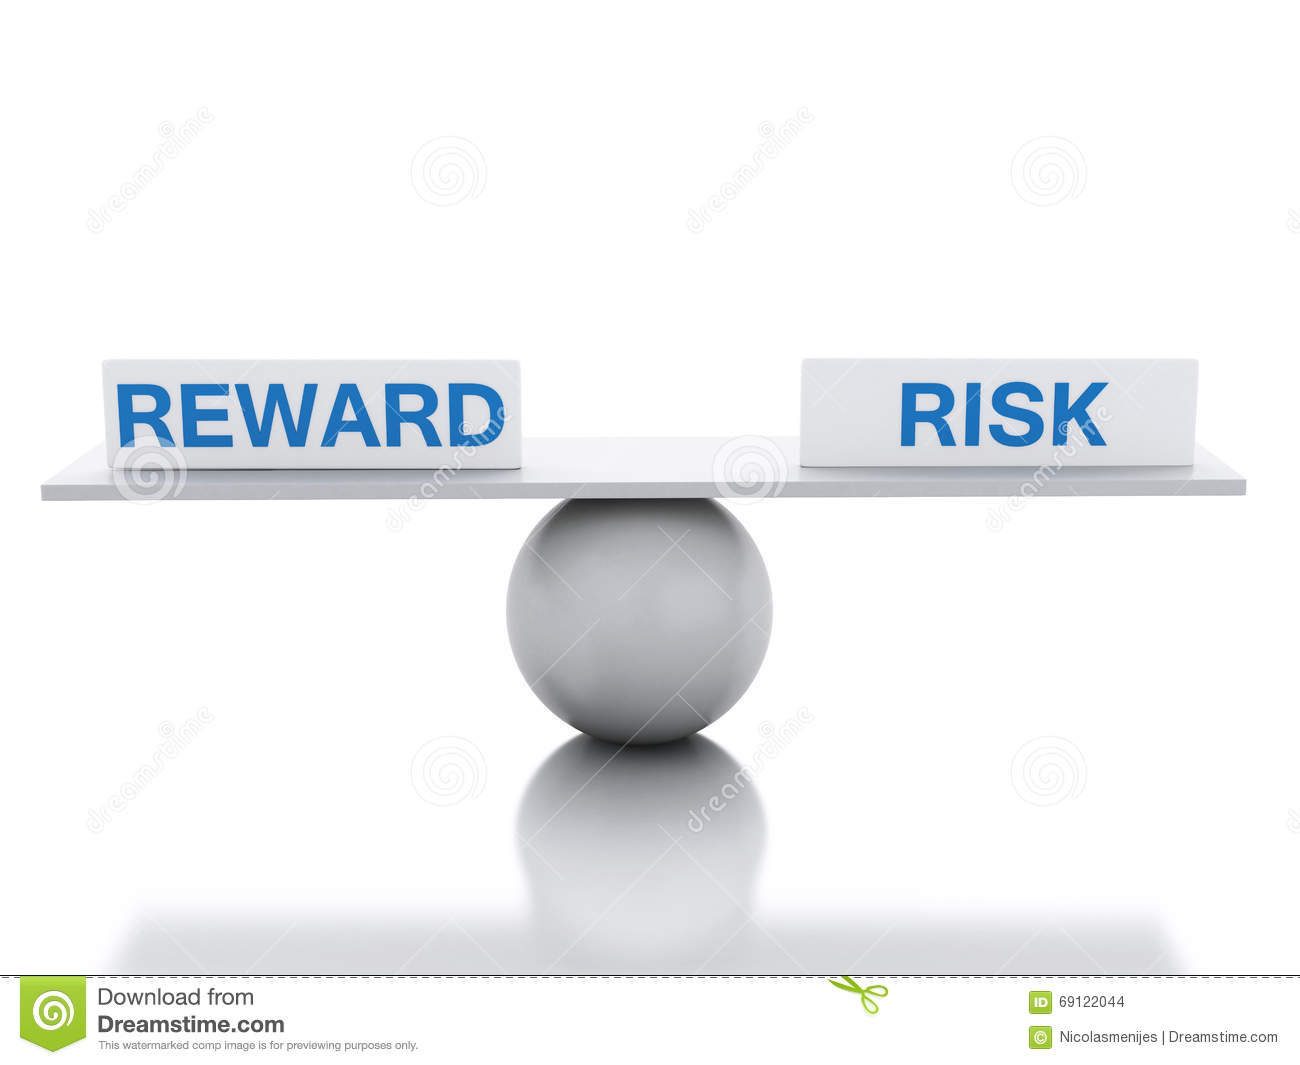 Risk/Reward Ratio